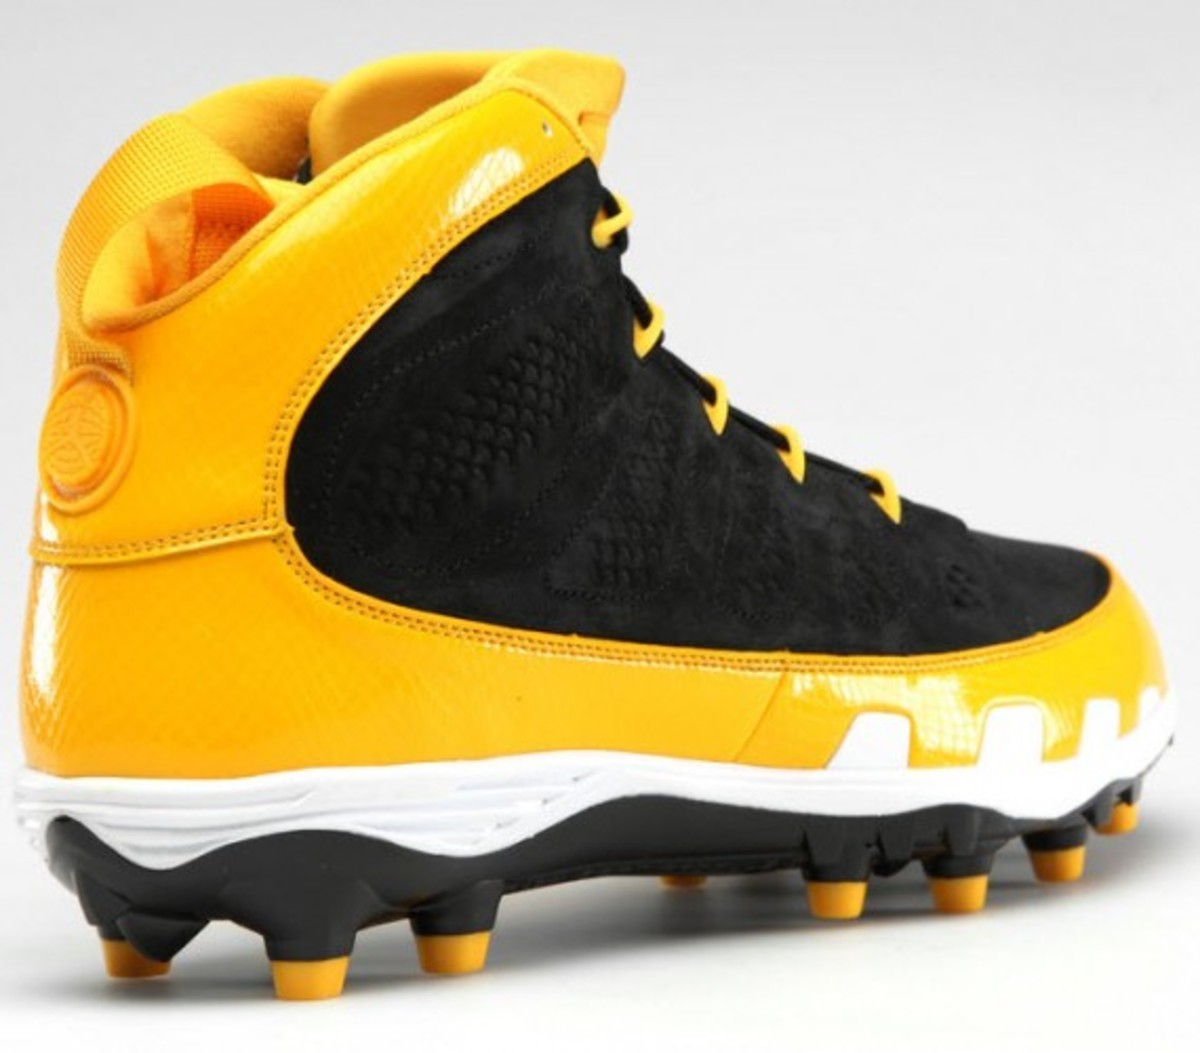 air-jordan-ix-nfl-cleats-collection-10